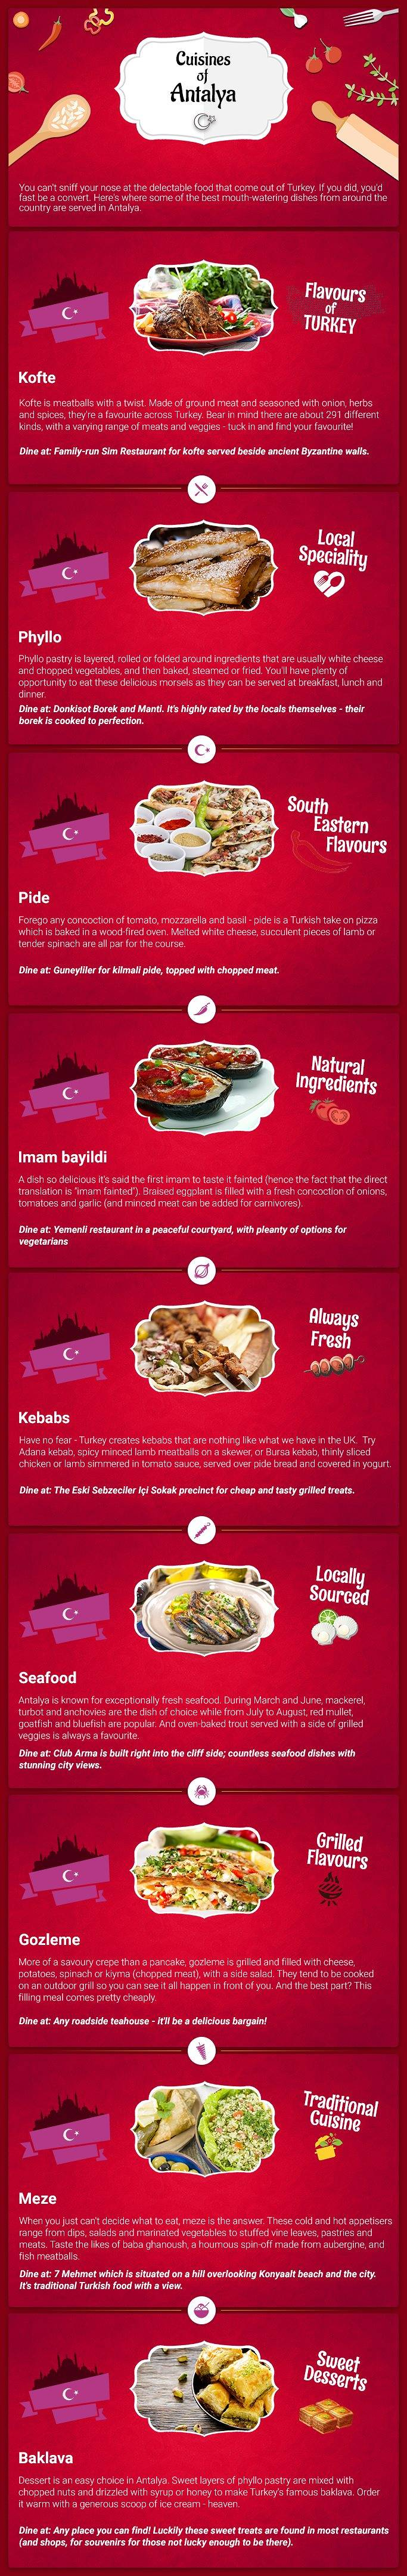 Cuisines of Antalya Graphic